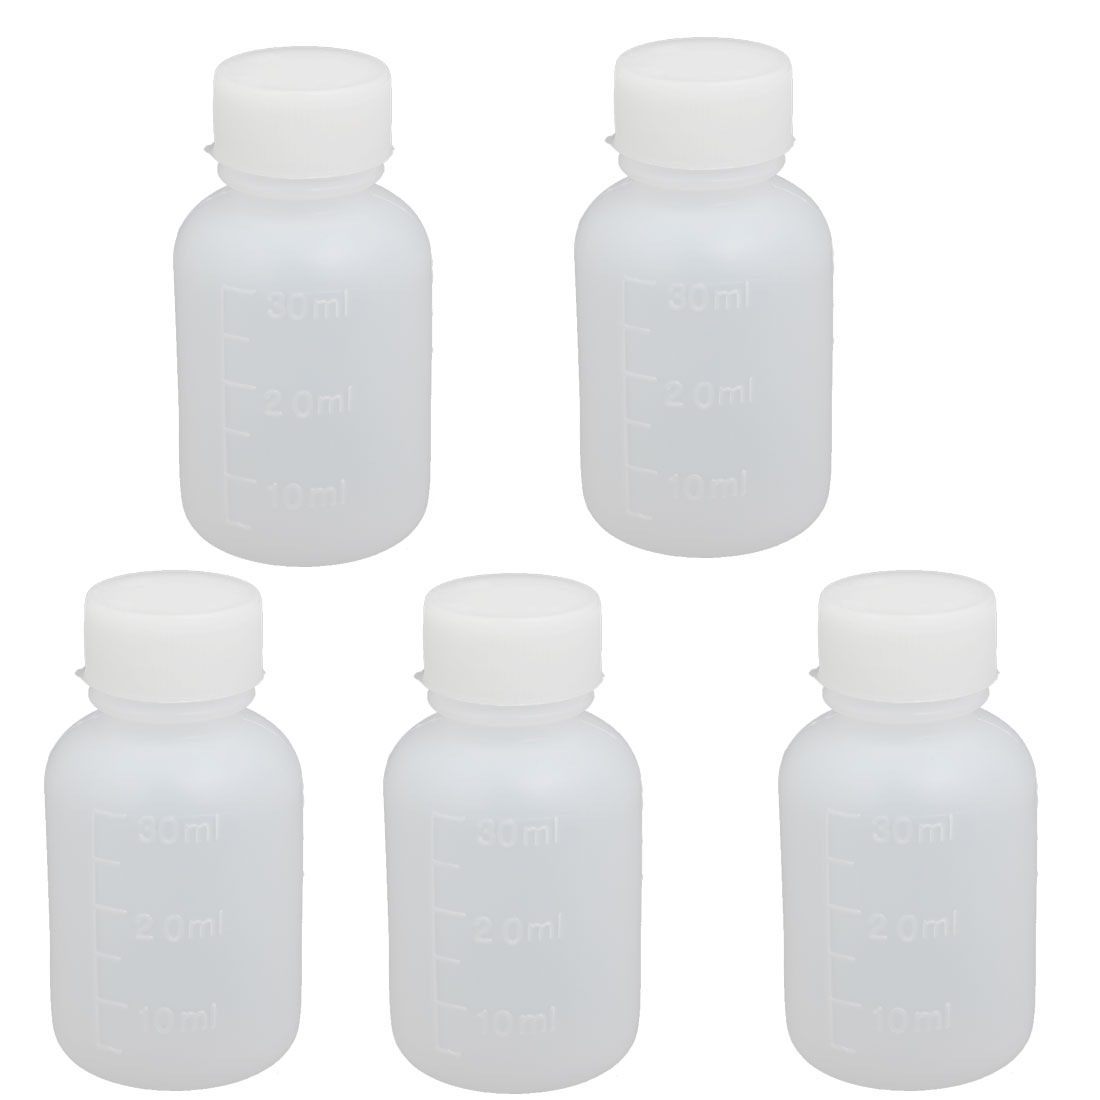 60ml 14mm Diameter PE Plastic Round Narrow Mouth Bottle Clear 5pcs